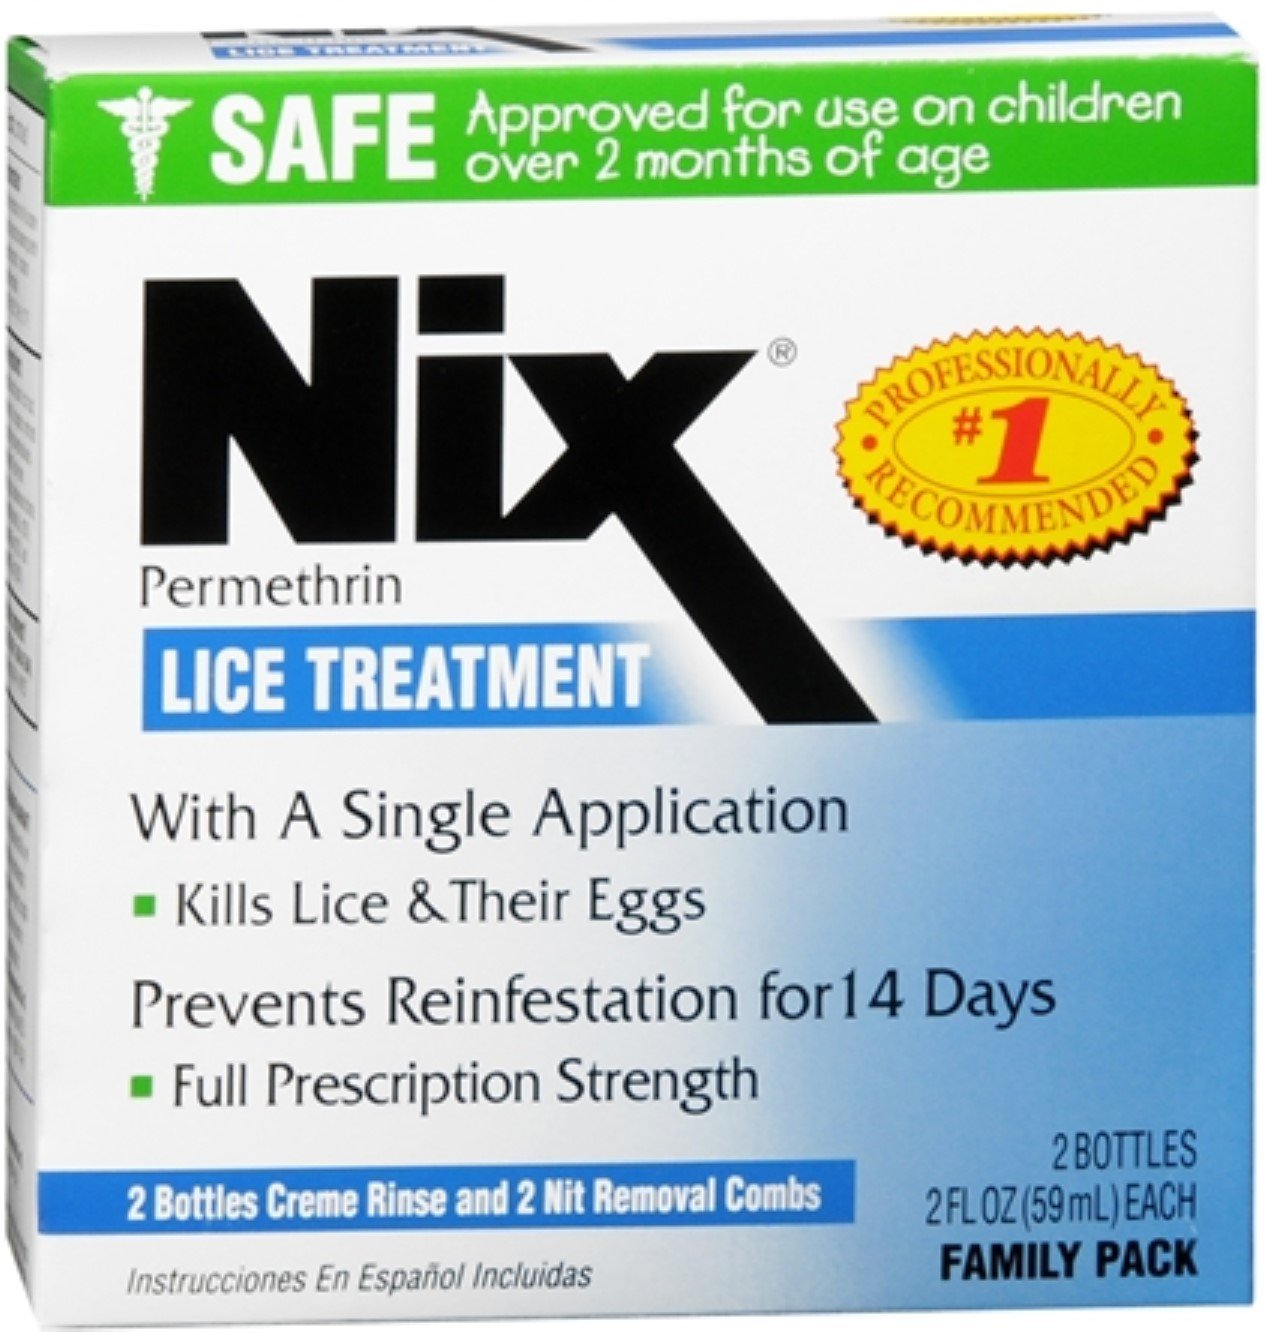 Nix Lice Treatment Family Pack 4 oz (Pack of 12) by NIX